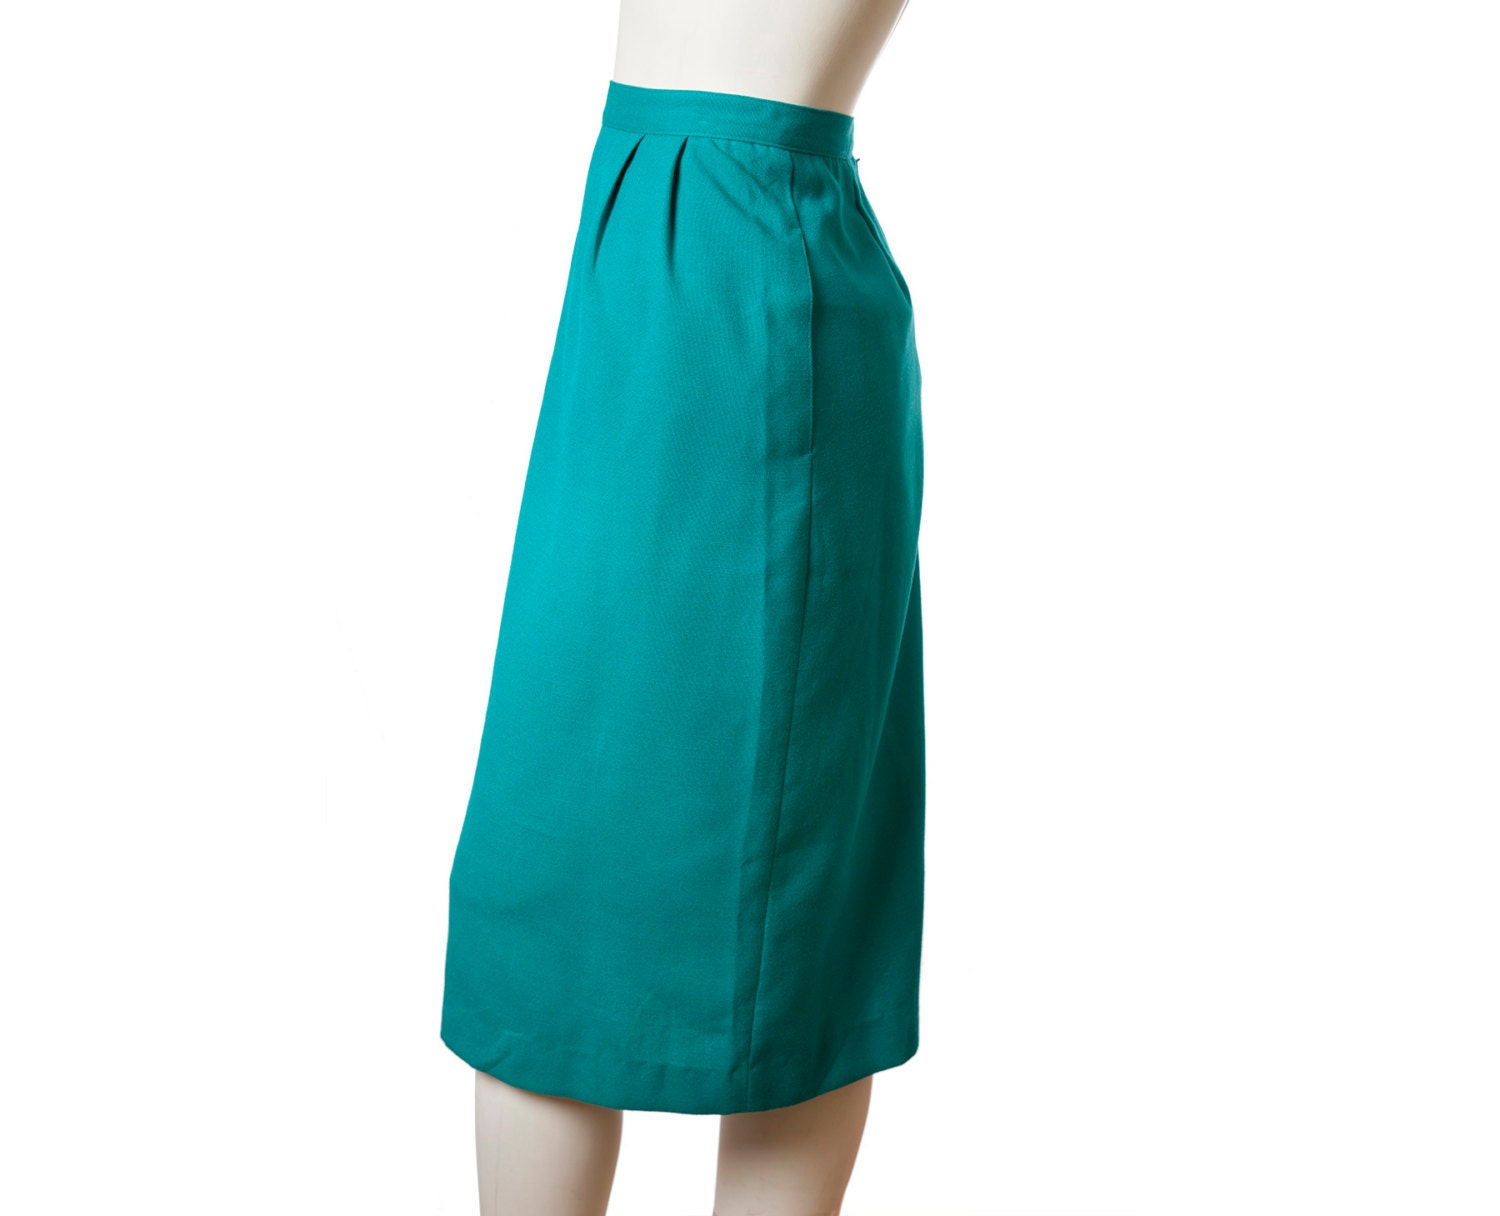 vintage teal blue pencil skirt with pockets size by